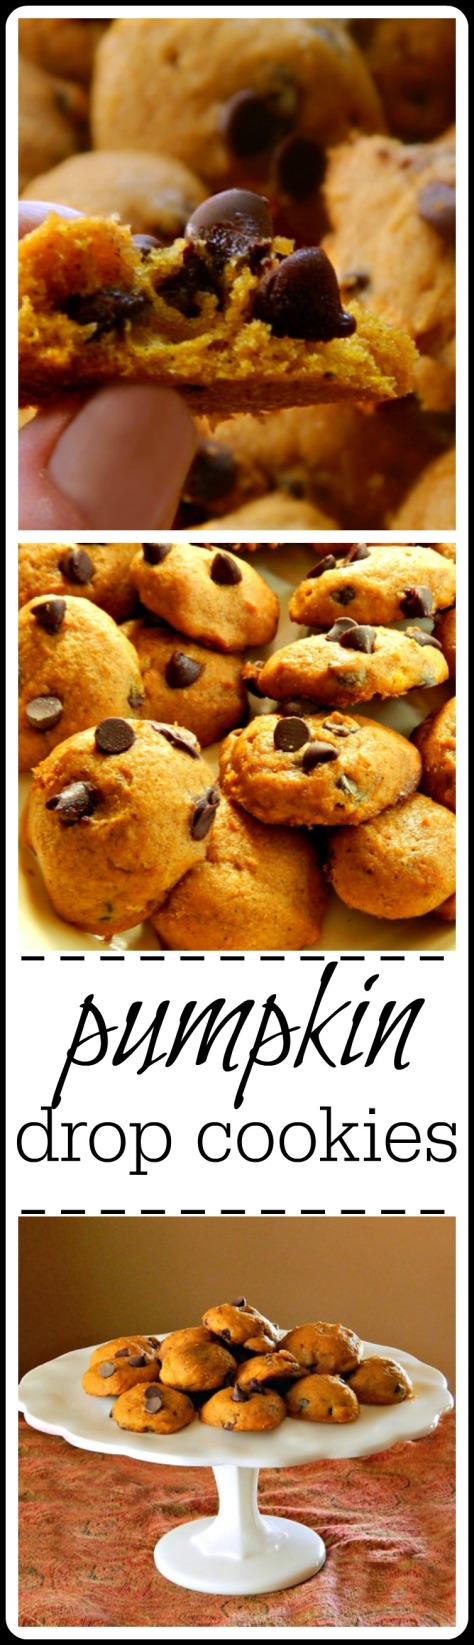 Pumpkin Drop Cookies: Ya gotta love these simple yet delectable cookies that are stirred up with a spoon! Make raisin or chocolate chip.